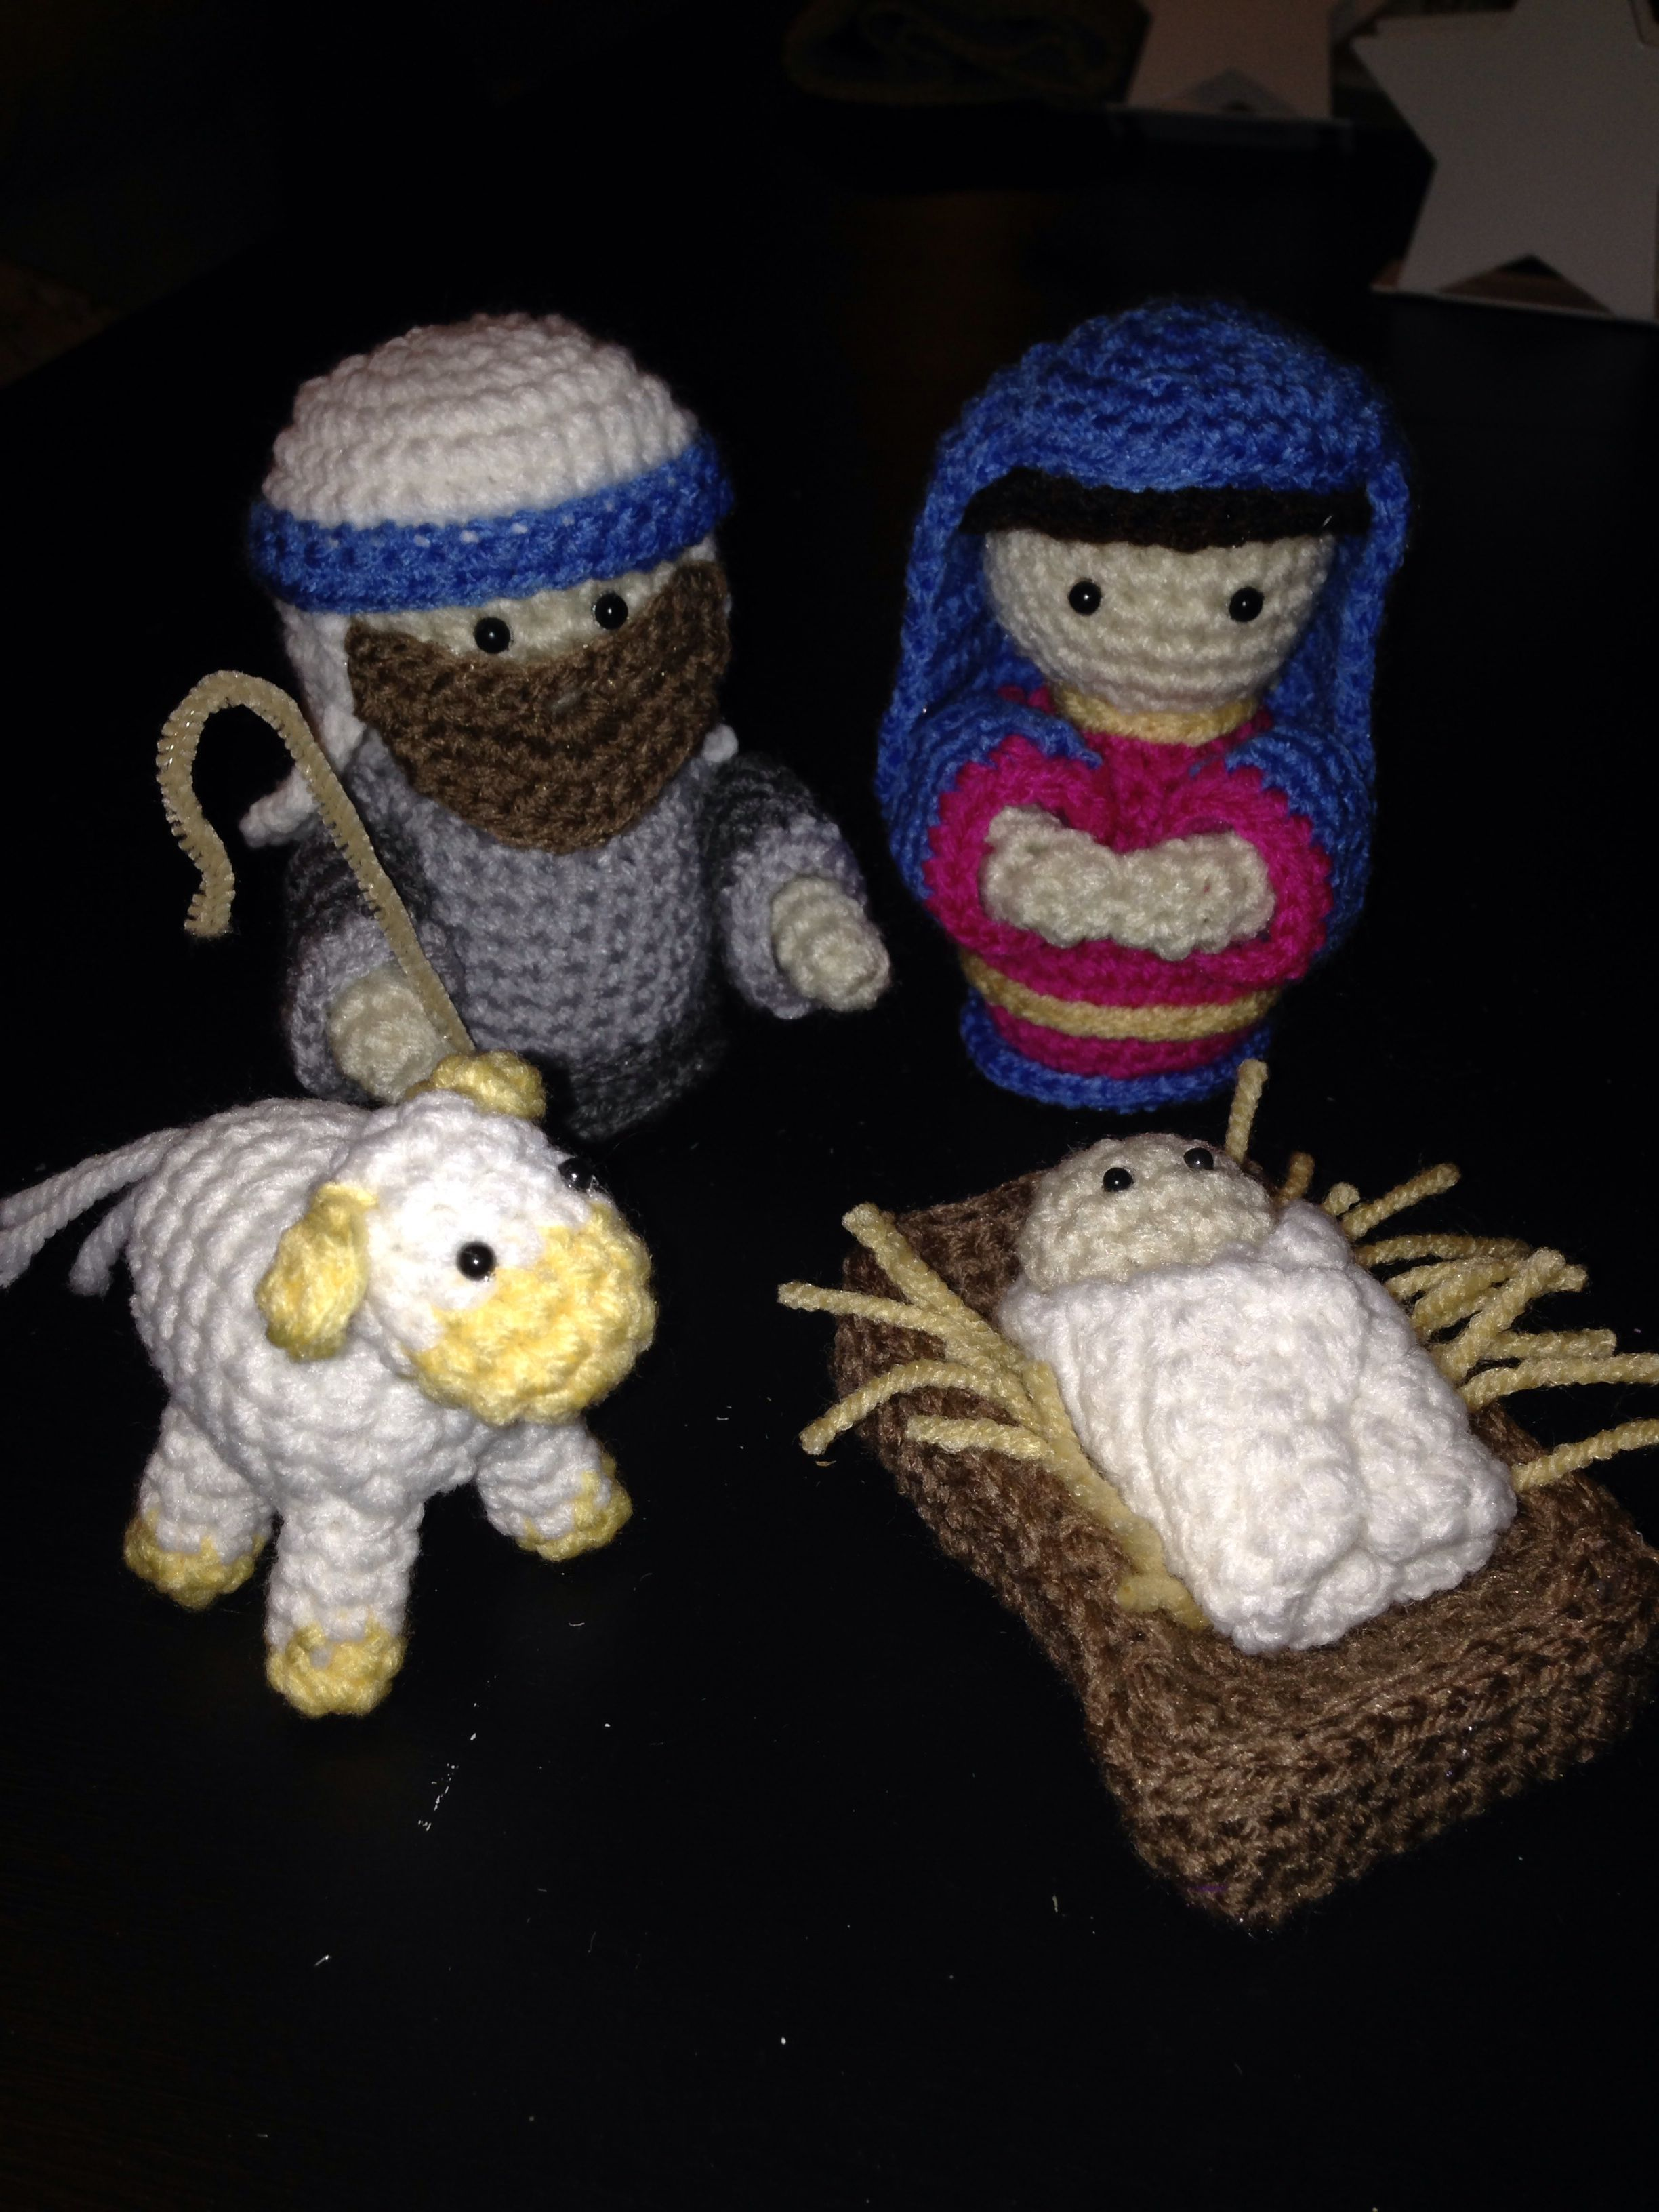 Amigurumi Nativity Free Download : Crochet nativity set pattern by gourmet crochet and can be found